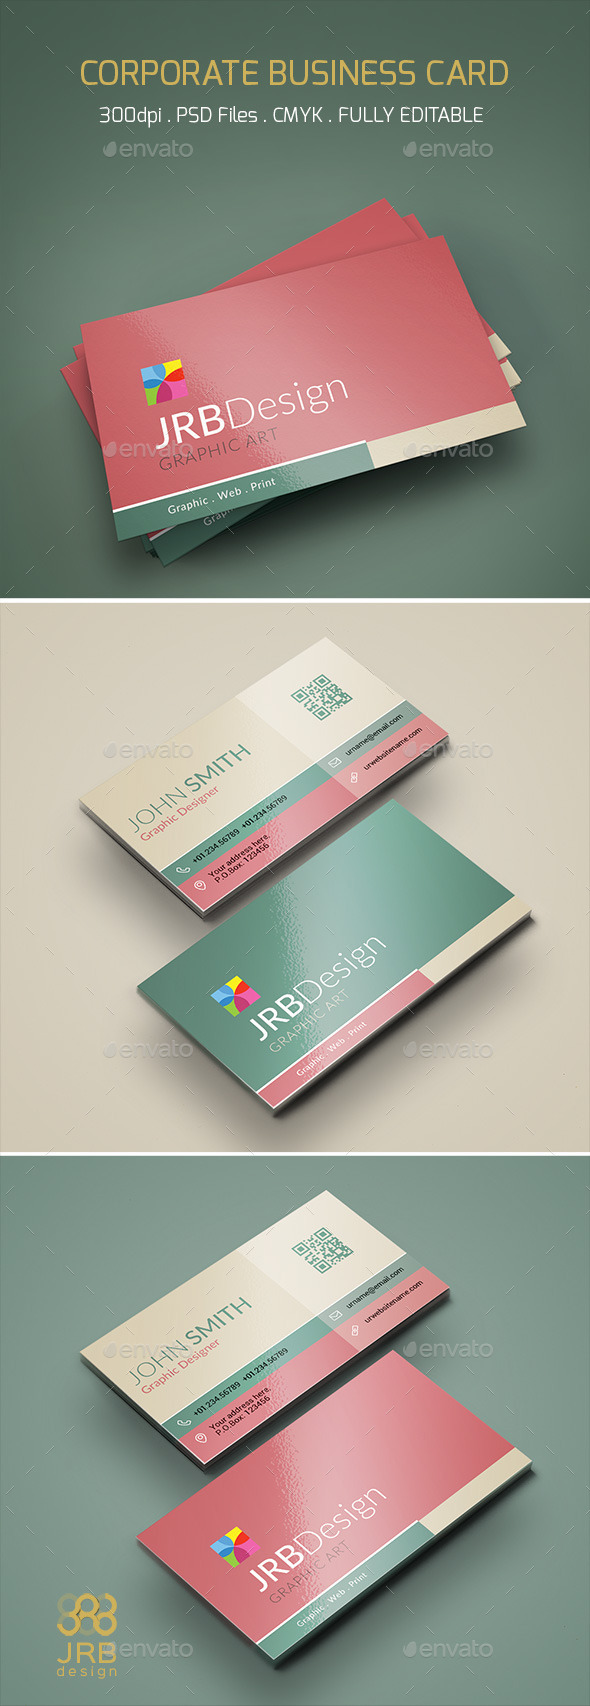 GraphicRiver Corporate Business Card 10289422